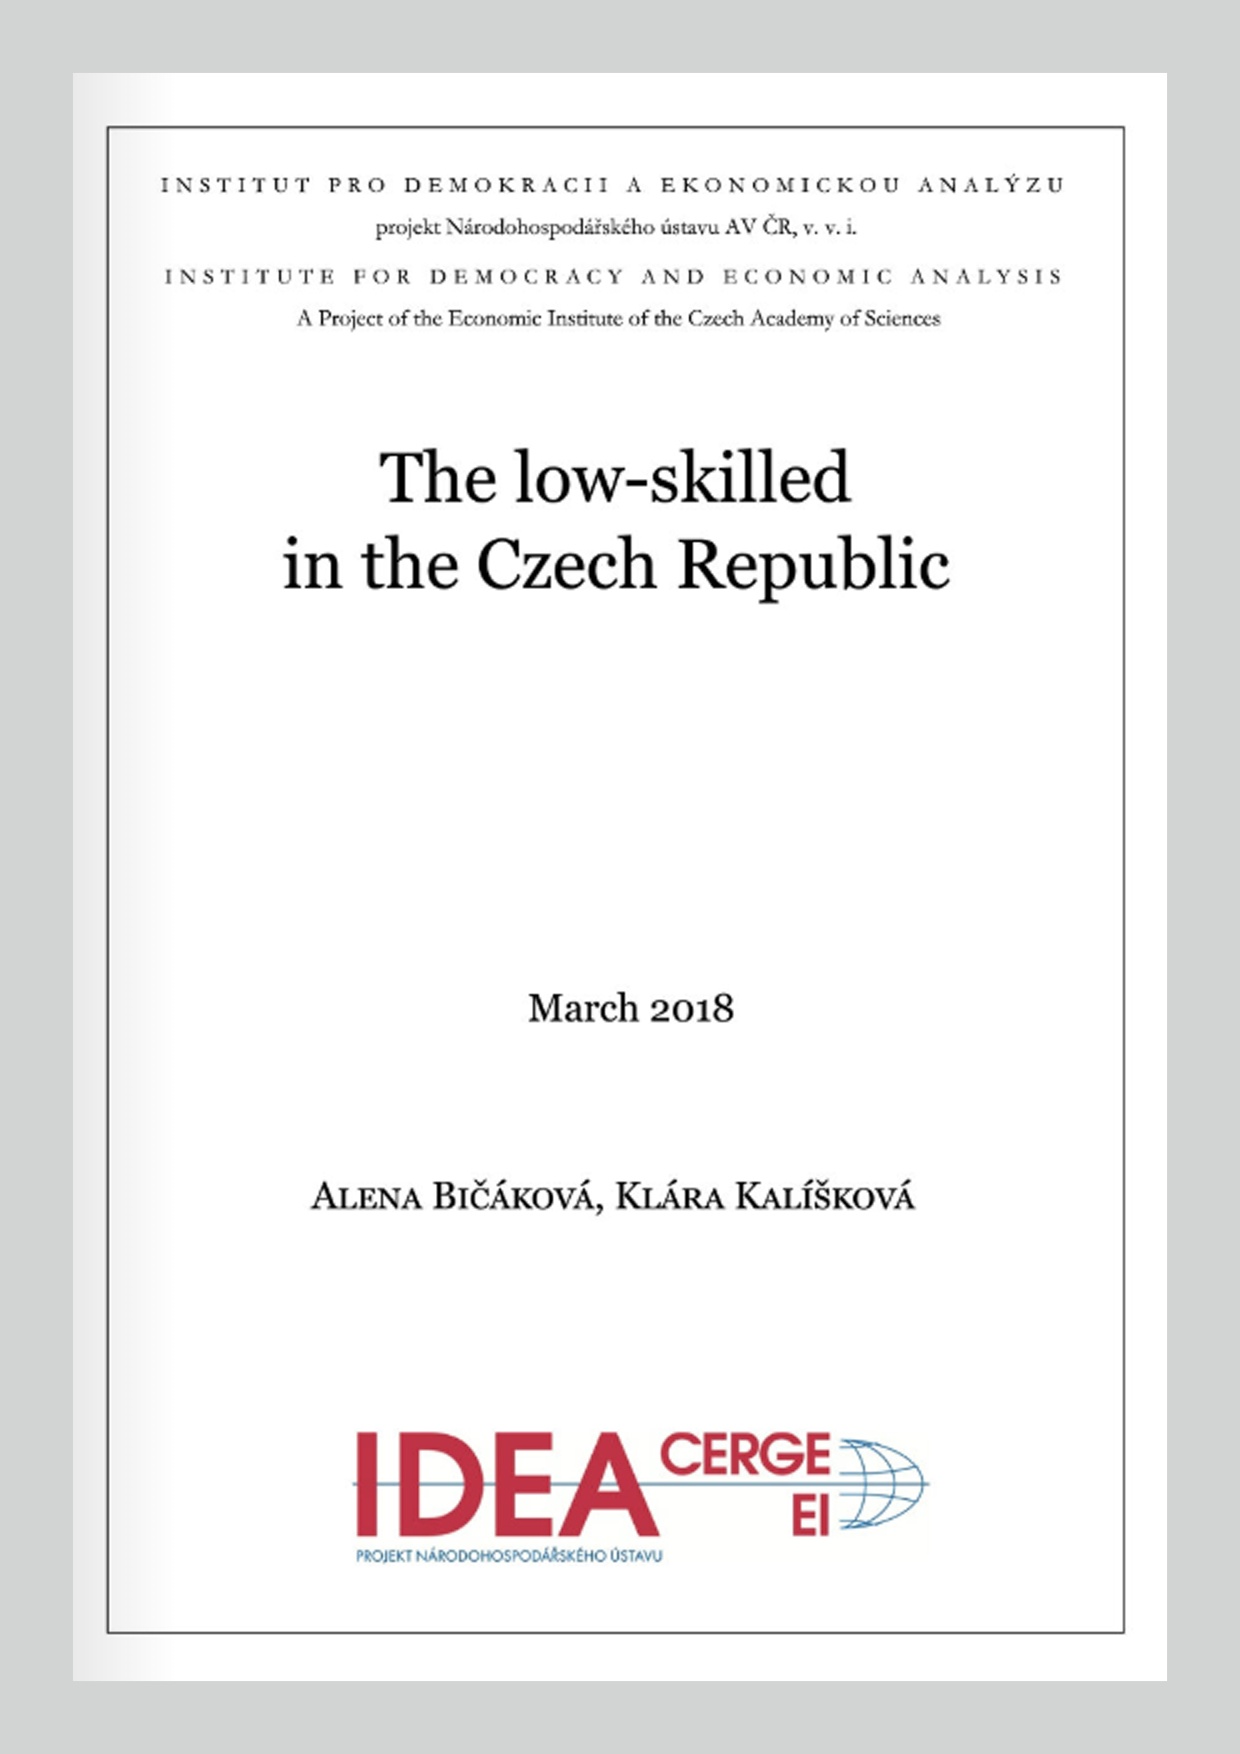 The low-skilled in the Czech Republic